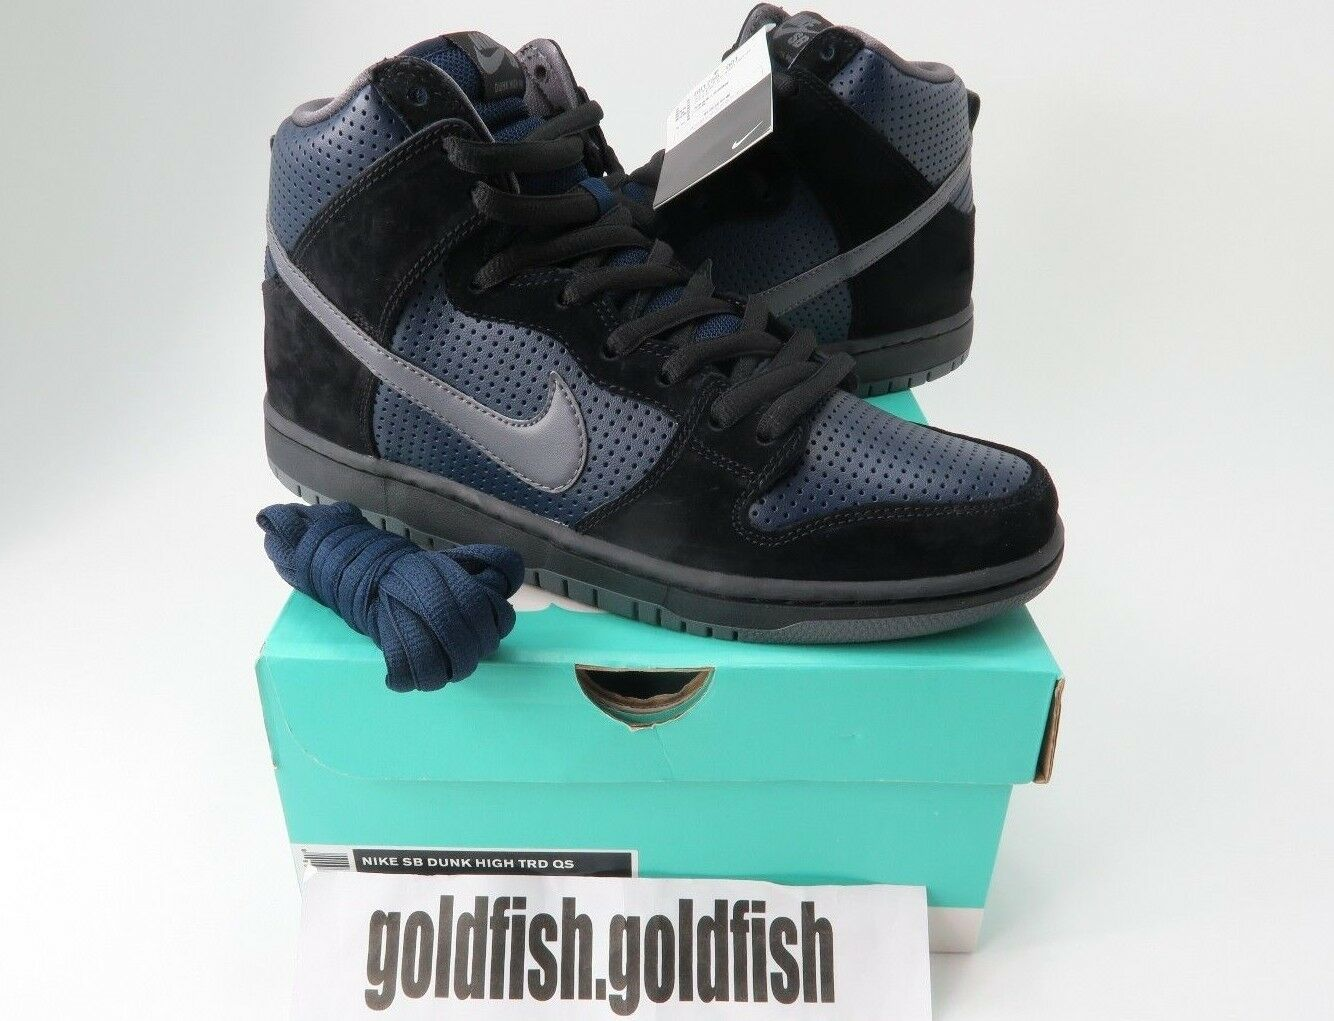 DS NIKE SB DUNK HIGH TRD QS GINO IANNUCCI 881758 001 BLACK